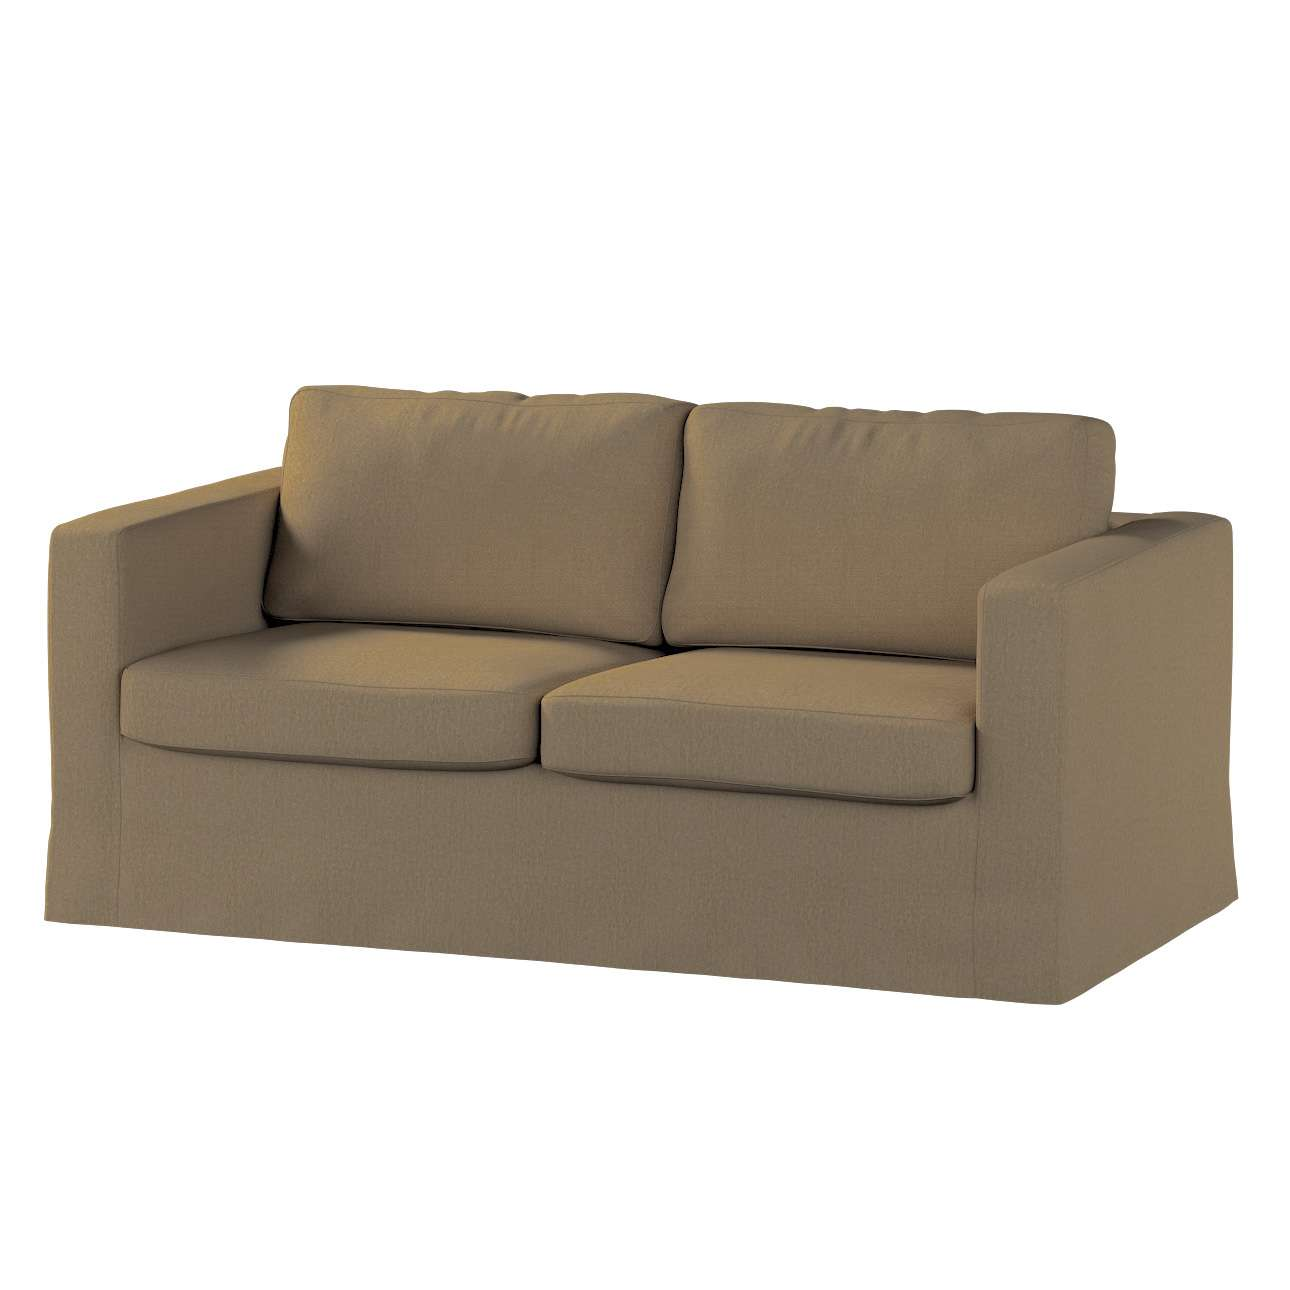 Floor length Karlstad 2-seater sofa cover in collection Chenille, fabric: 702-21